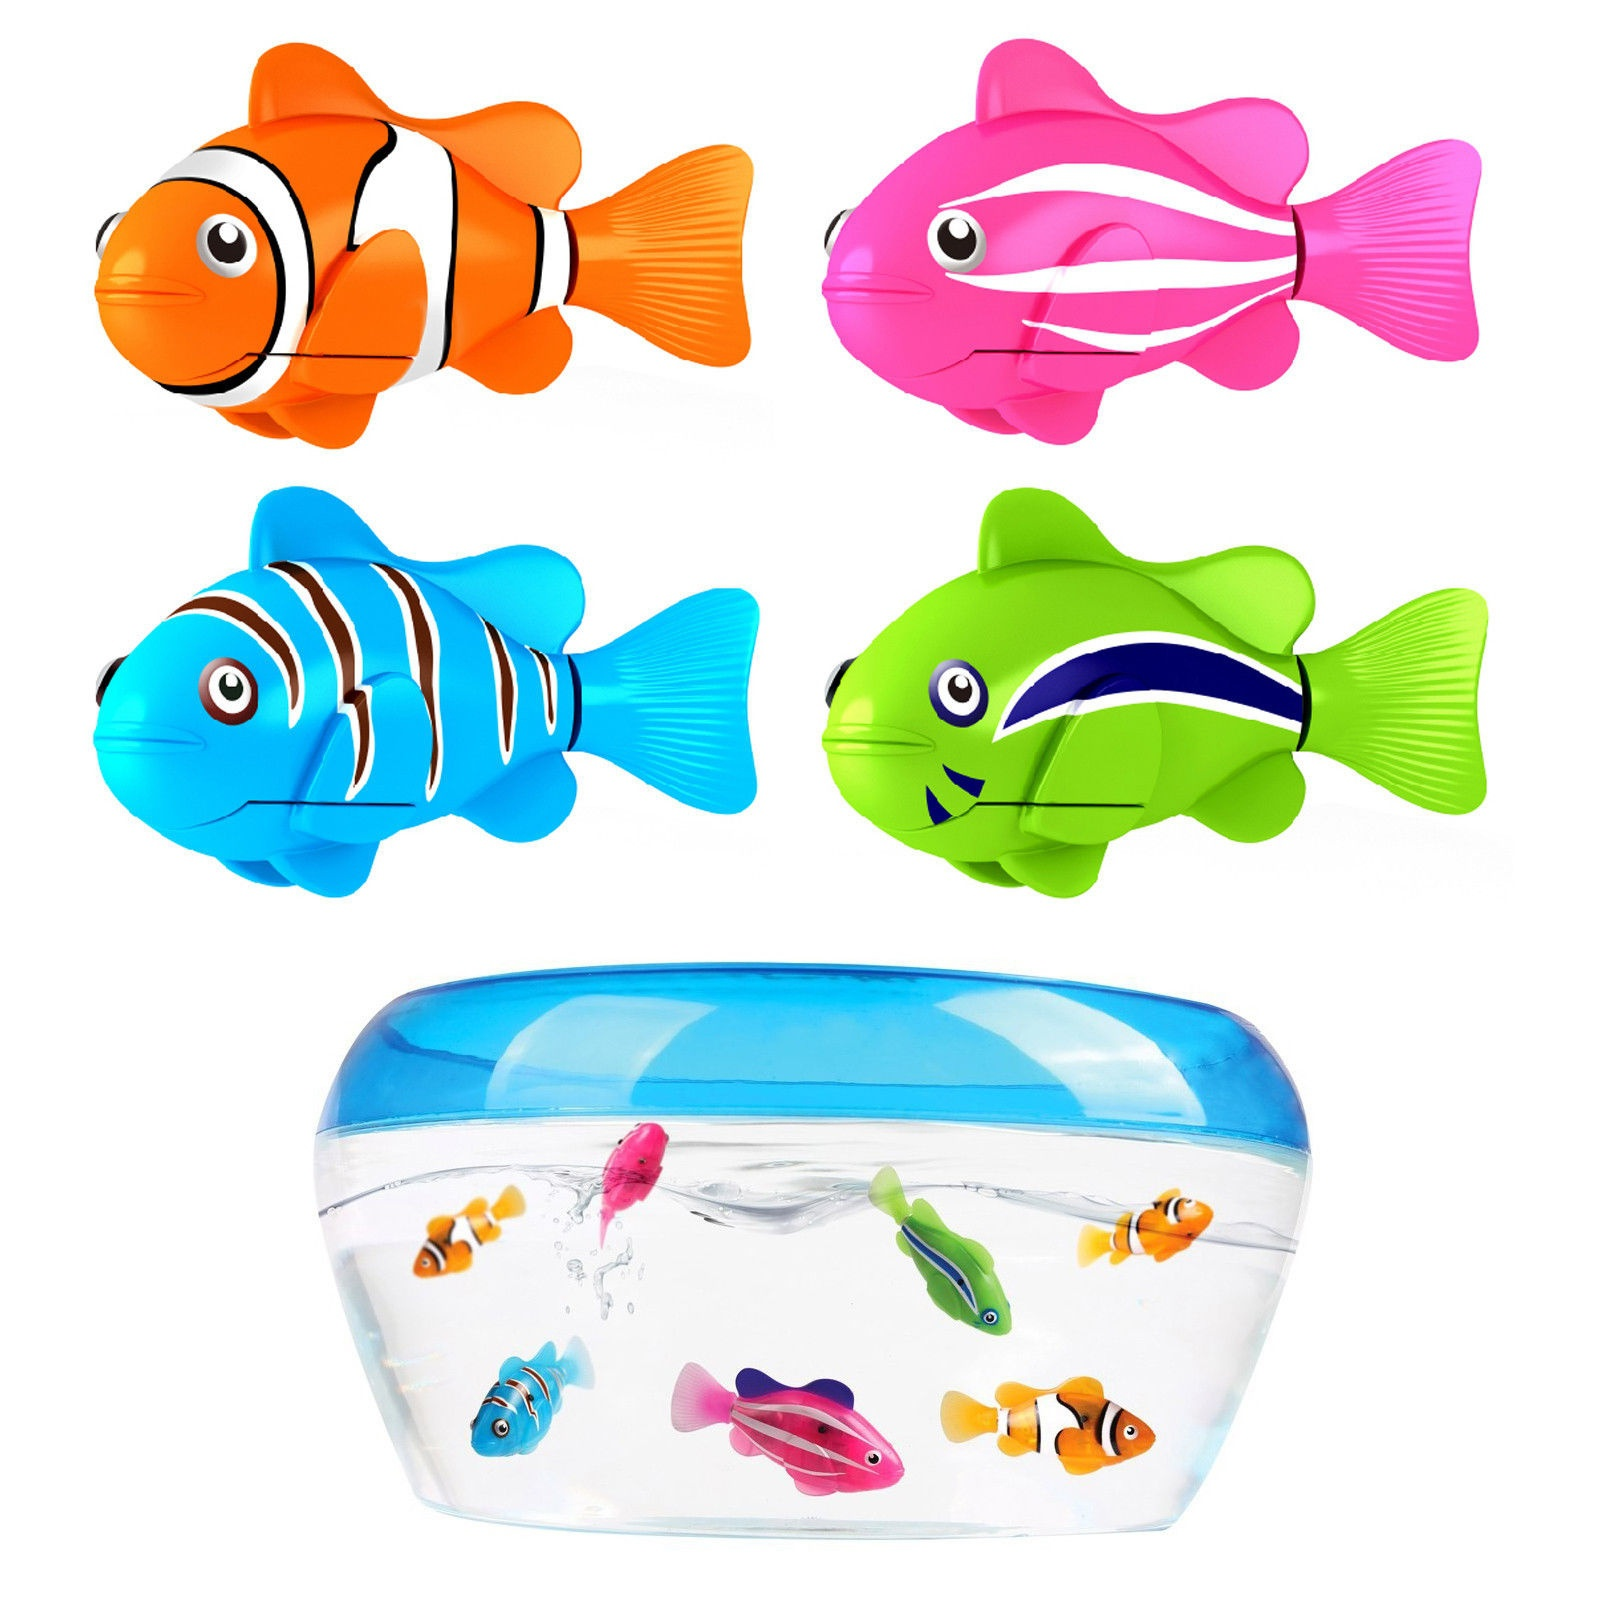 2018 New Funny Toy Clownfish Nemo Robo Robotic Fish Water Activated Kids Boys Girls Toy 88 xhe20 ip67 4pin waterproof connectors 4 pins power cable connector male and female automotive connectors plug and socket